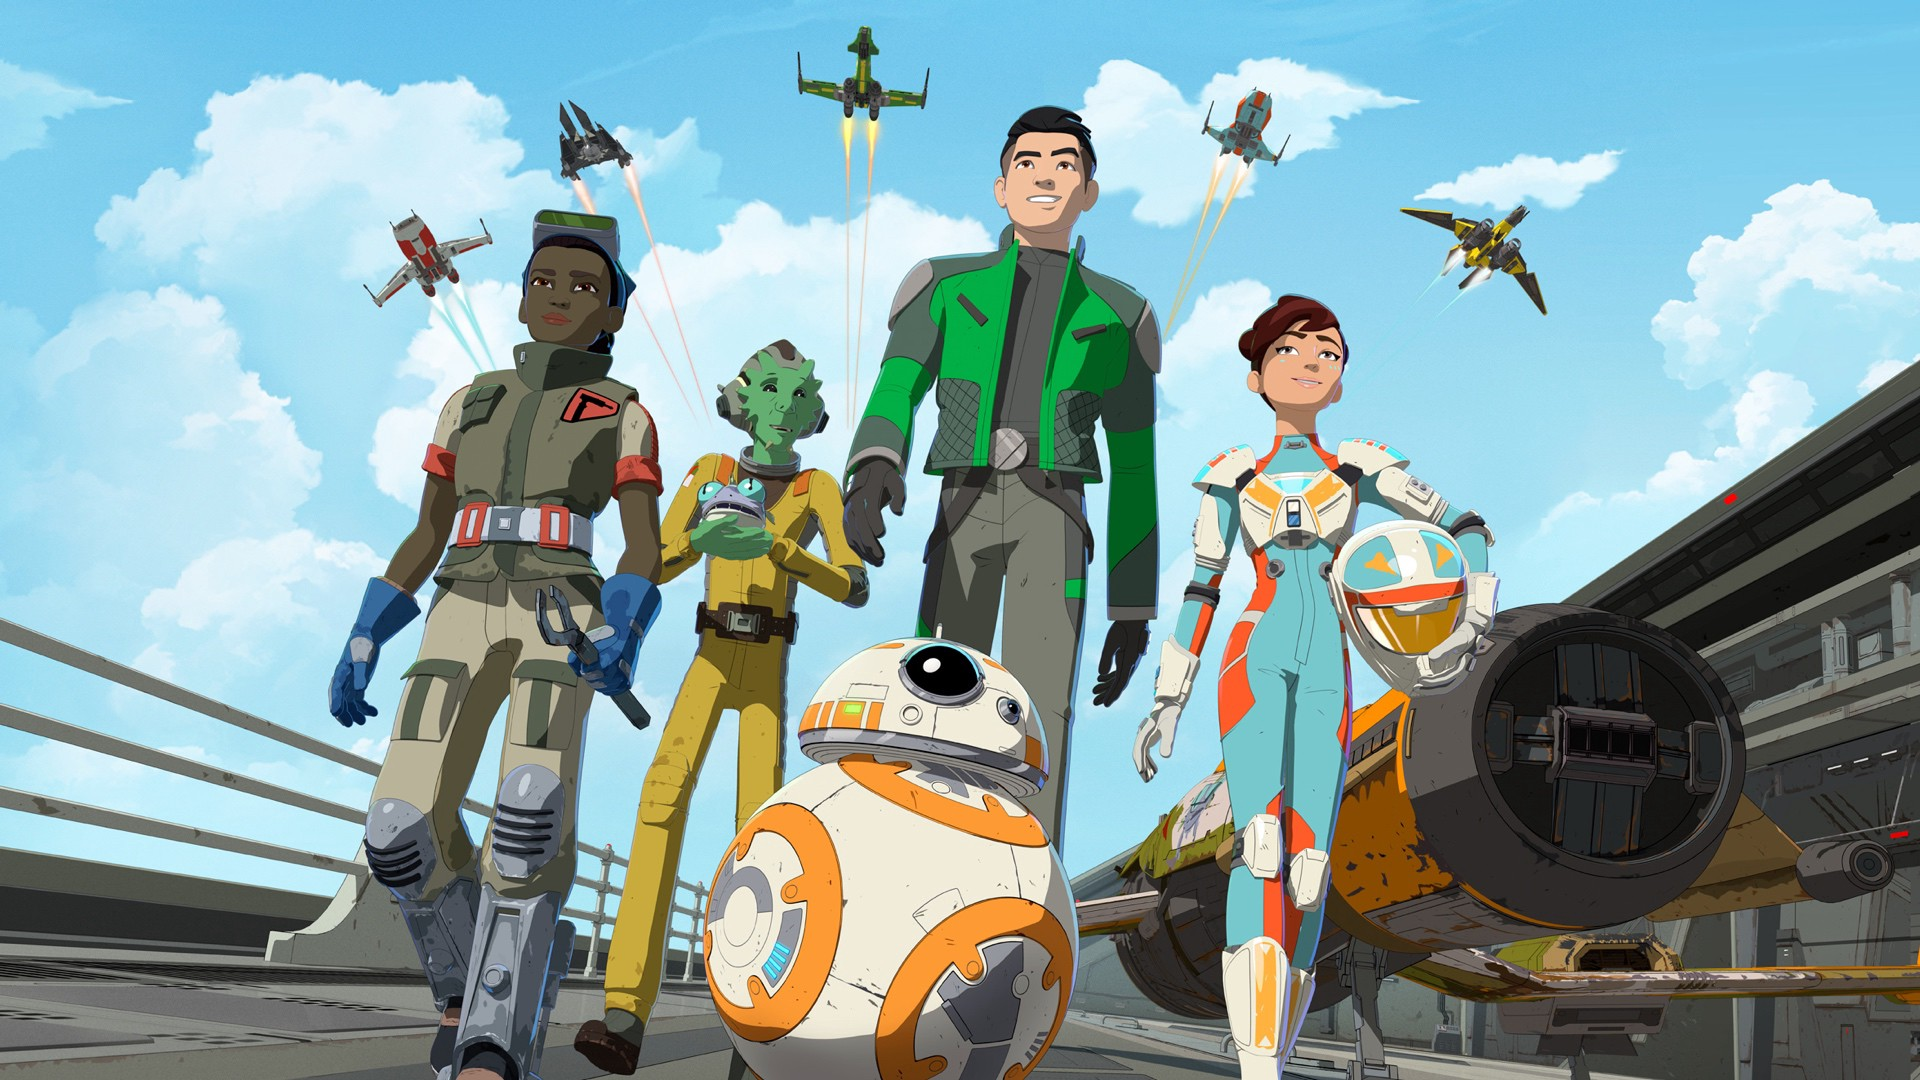 """Star Wars Resistance' Season 2 Episode 1: Full Review"